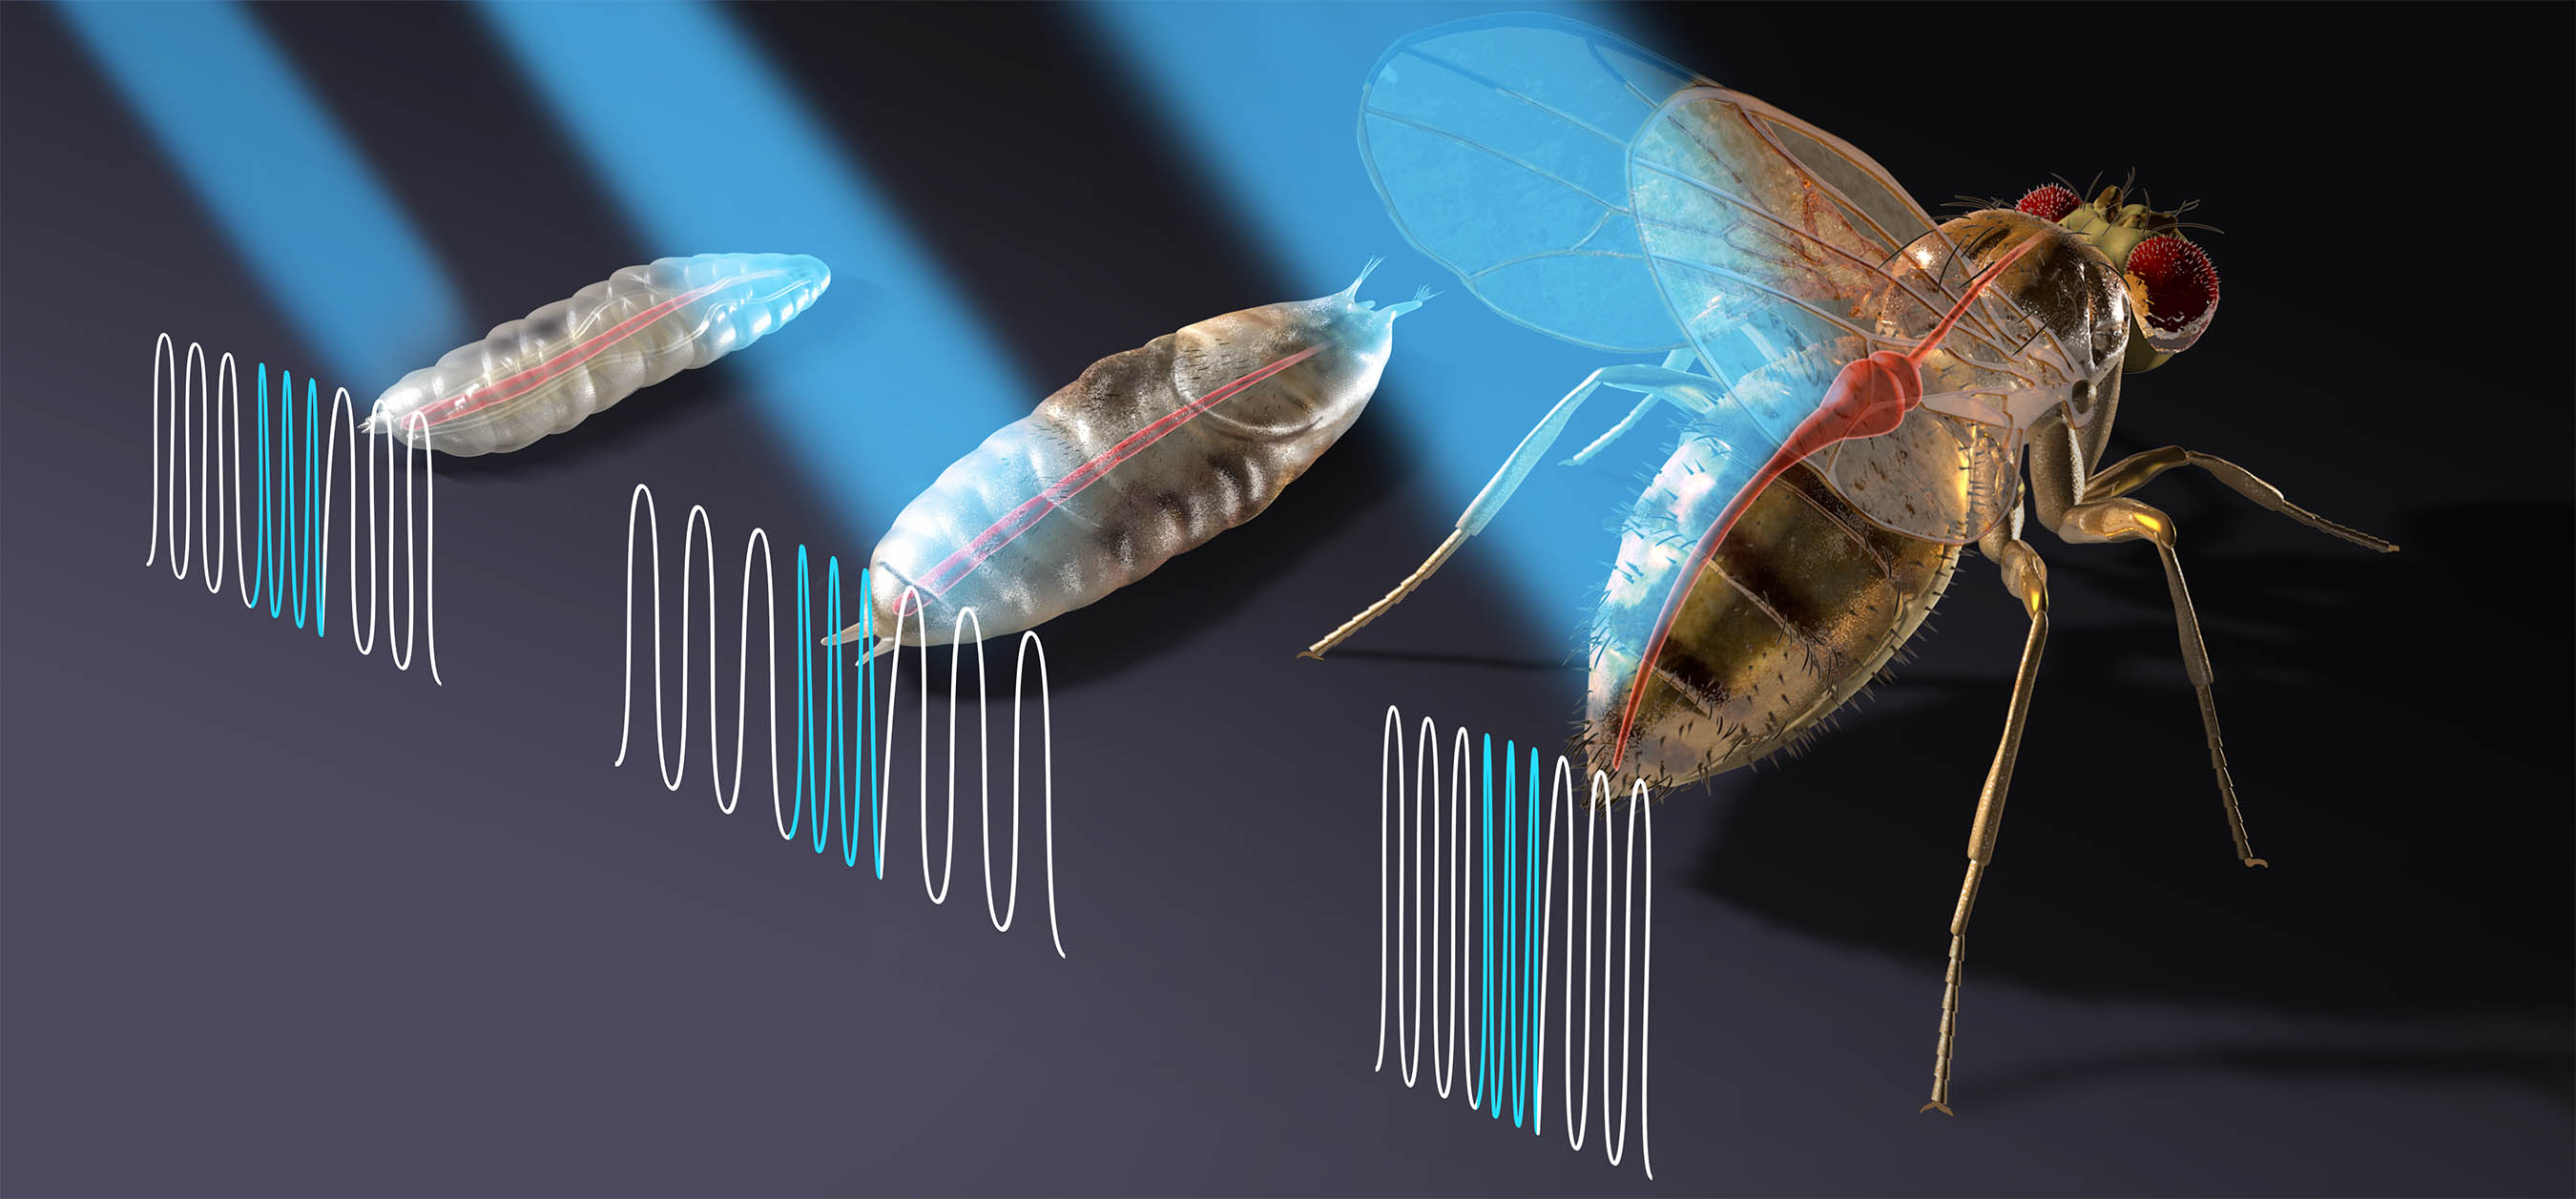 drawing of fruit fly larva, pupa and adult with blue light stimulating heart rhythm